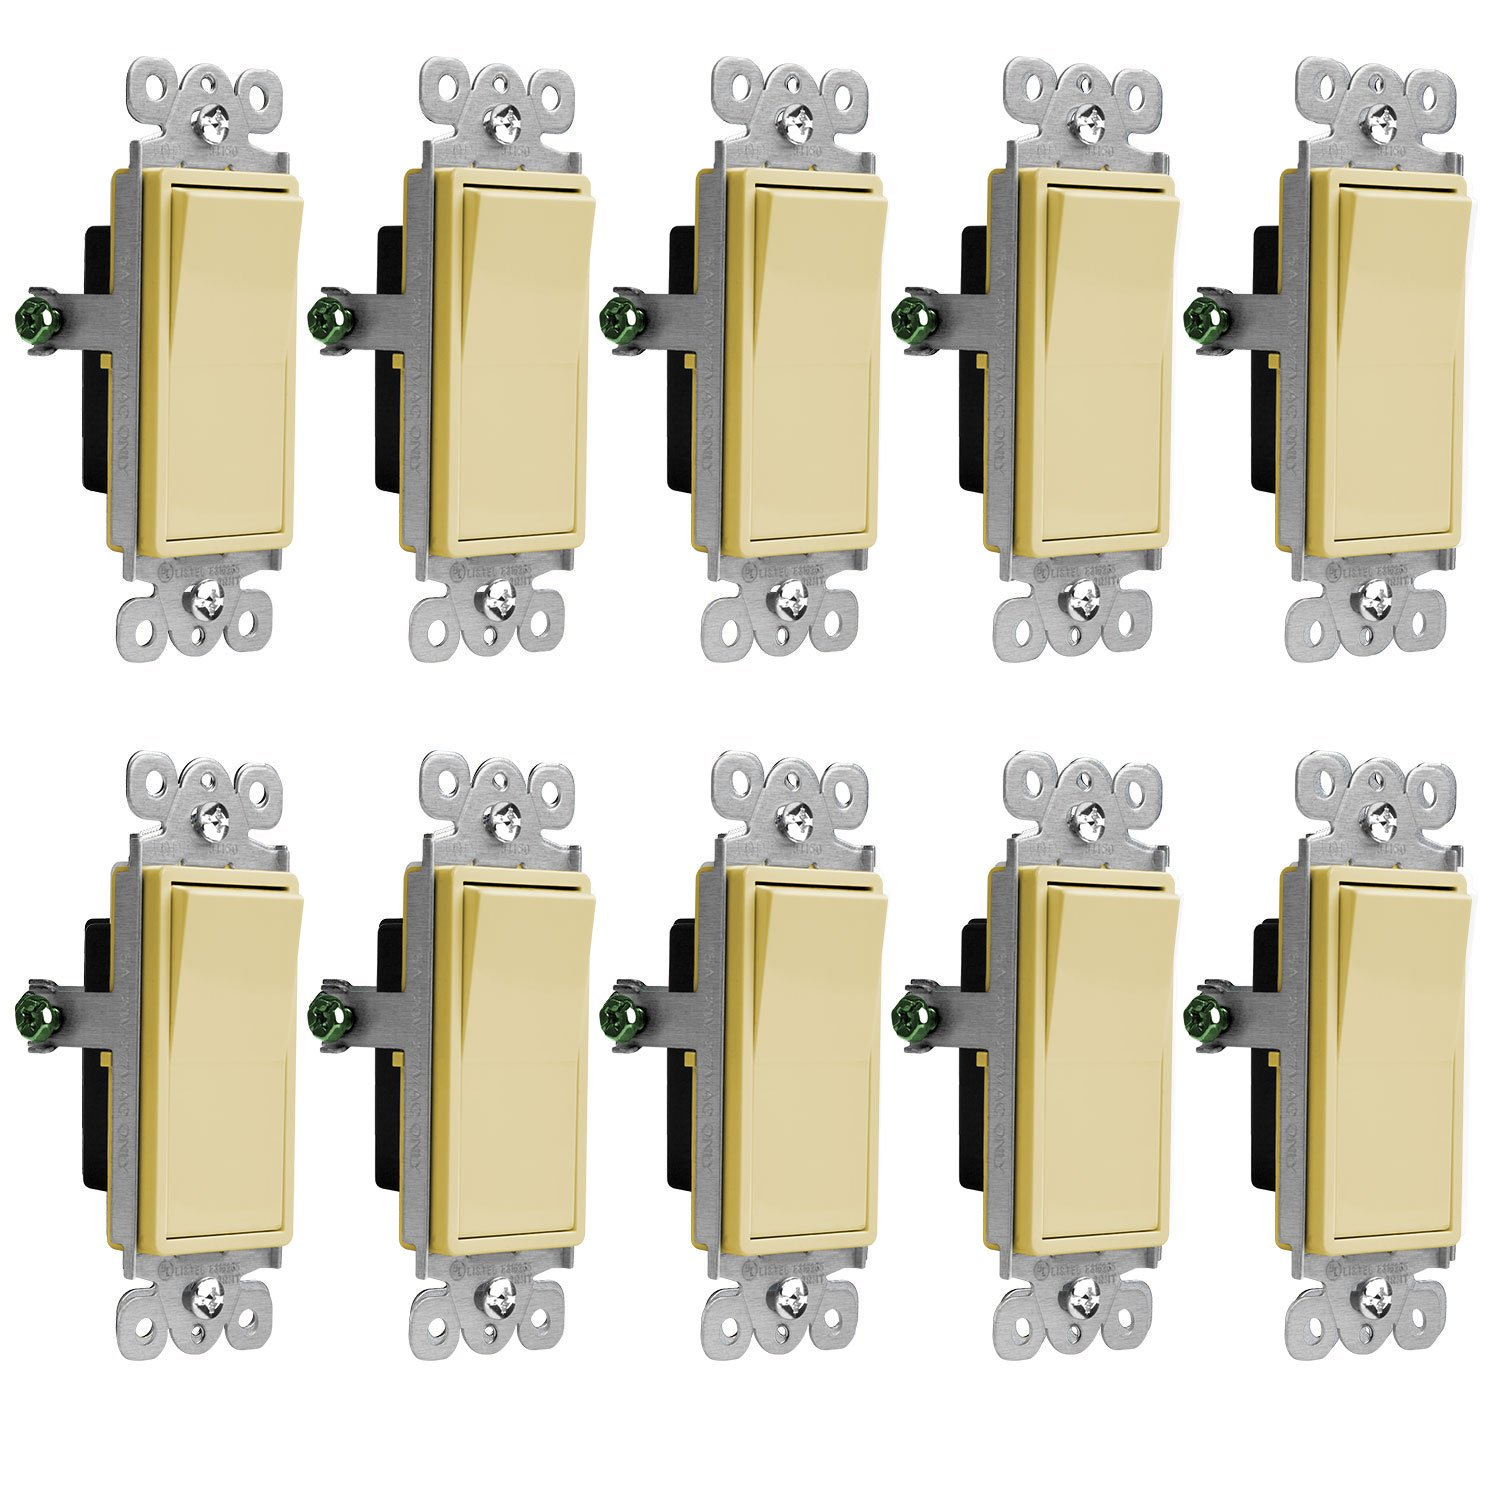 Enerlites Decorator On/Off 3-Way Paddle Wall Switch 93150-W | 15 Amp, 120V/277V, AC, Single Pole, 3 Wire, Grounding Screw, Residential and Commercial Graded Light Switch, UL Listed | Ivory - 10 Pack